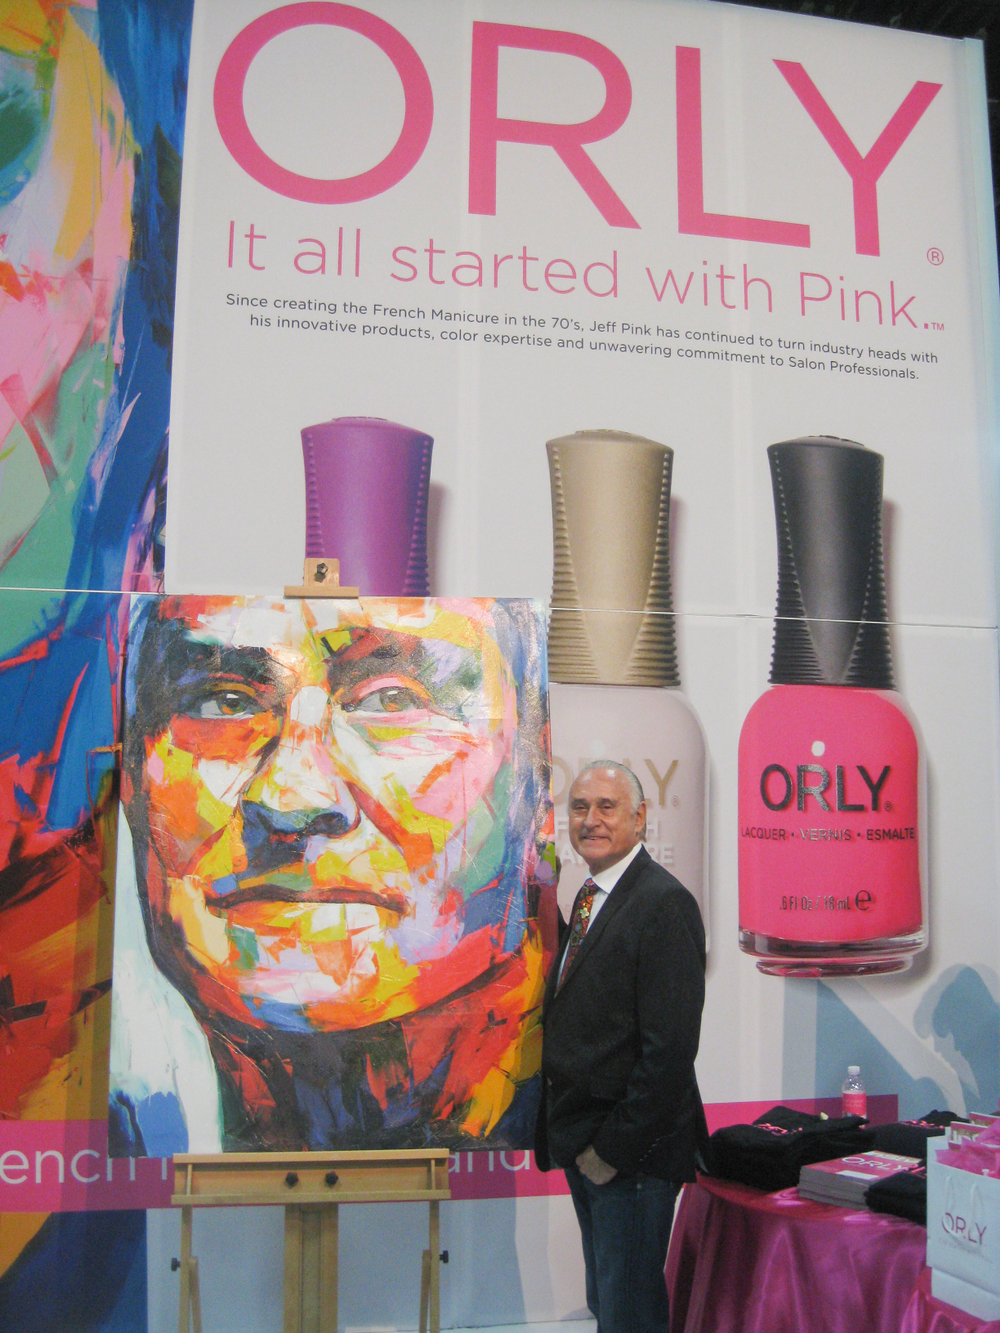 <p>Orly&rsquo;s Jeff Pink invented the French manicure and is recognized for his many contributions to the industry during the show. &ldquo;They say, &lsquo;It all started with Pink. I say, &lsquo;It all started with you,&rsquo;&rdquo; Pink told the crowd.</p>